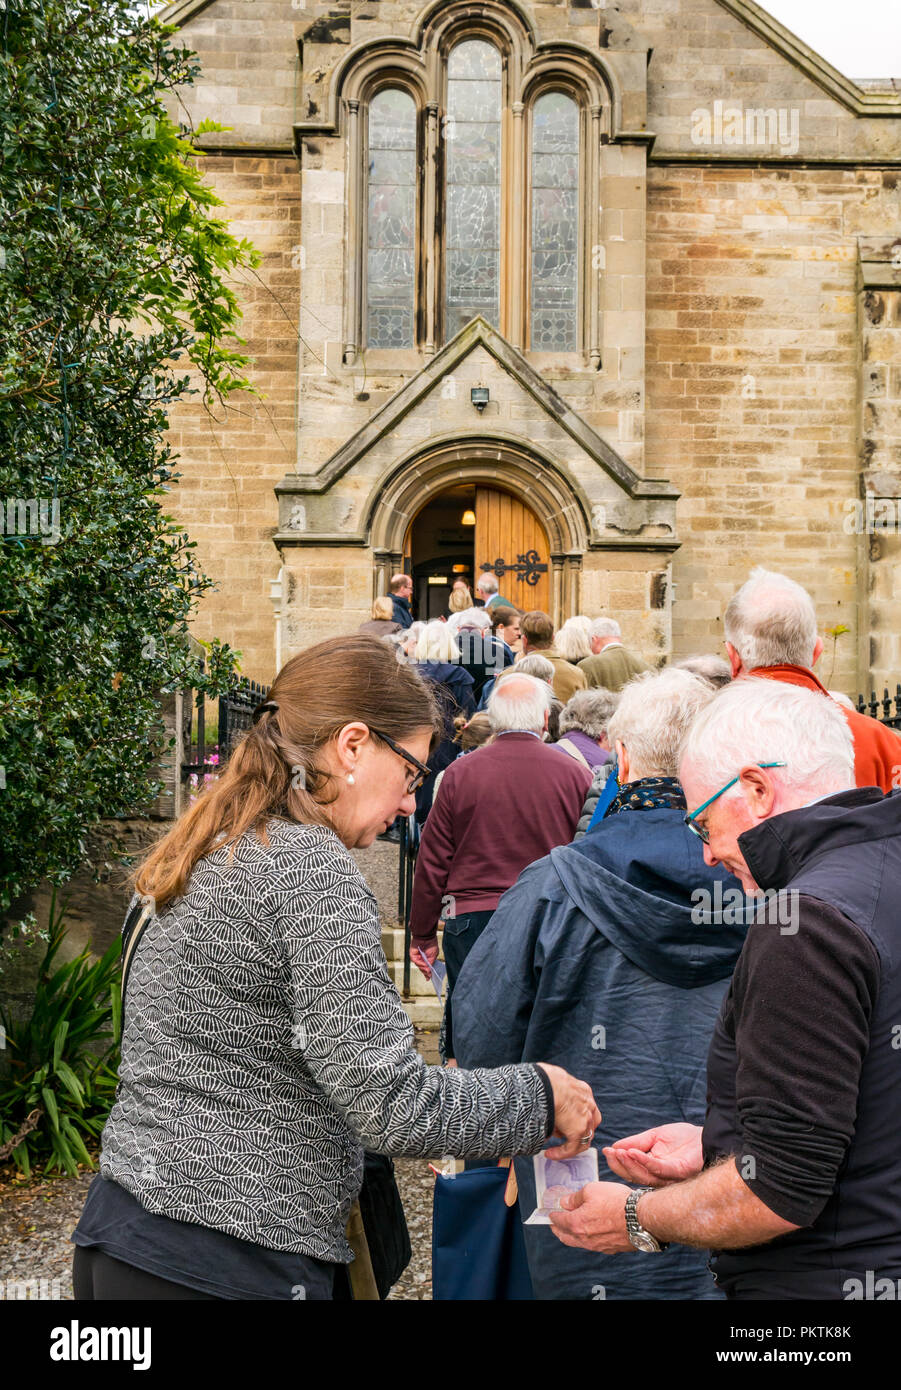 Gladsmuir Parish Church, Gladsmuir, East Lothian, Scotland, UK, 15th September 2018. The concert series continues on its second day with Bach's Musical Offering  by Dunedin Consort at the Lammermuir Festival in Gladsmuir. The 2018 Lammermuir Festival runs from 14th to 23rd September, and won the Royal Philharmonic Society Music Award in 2017. The Festival will celebrate its 10th anniversary in 2019. People queue to get into the concert and buy programmes Stock Photo